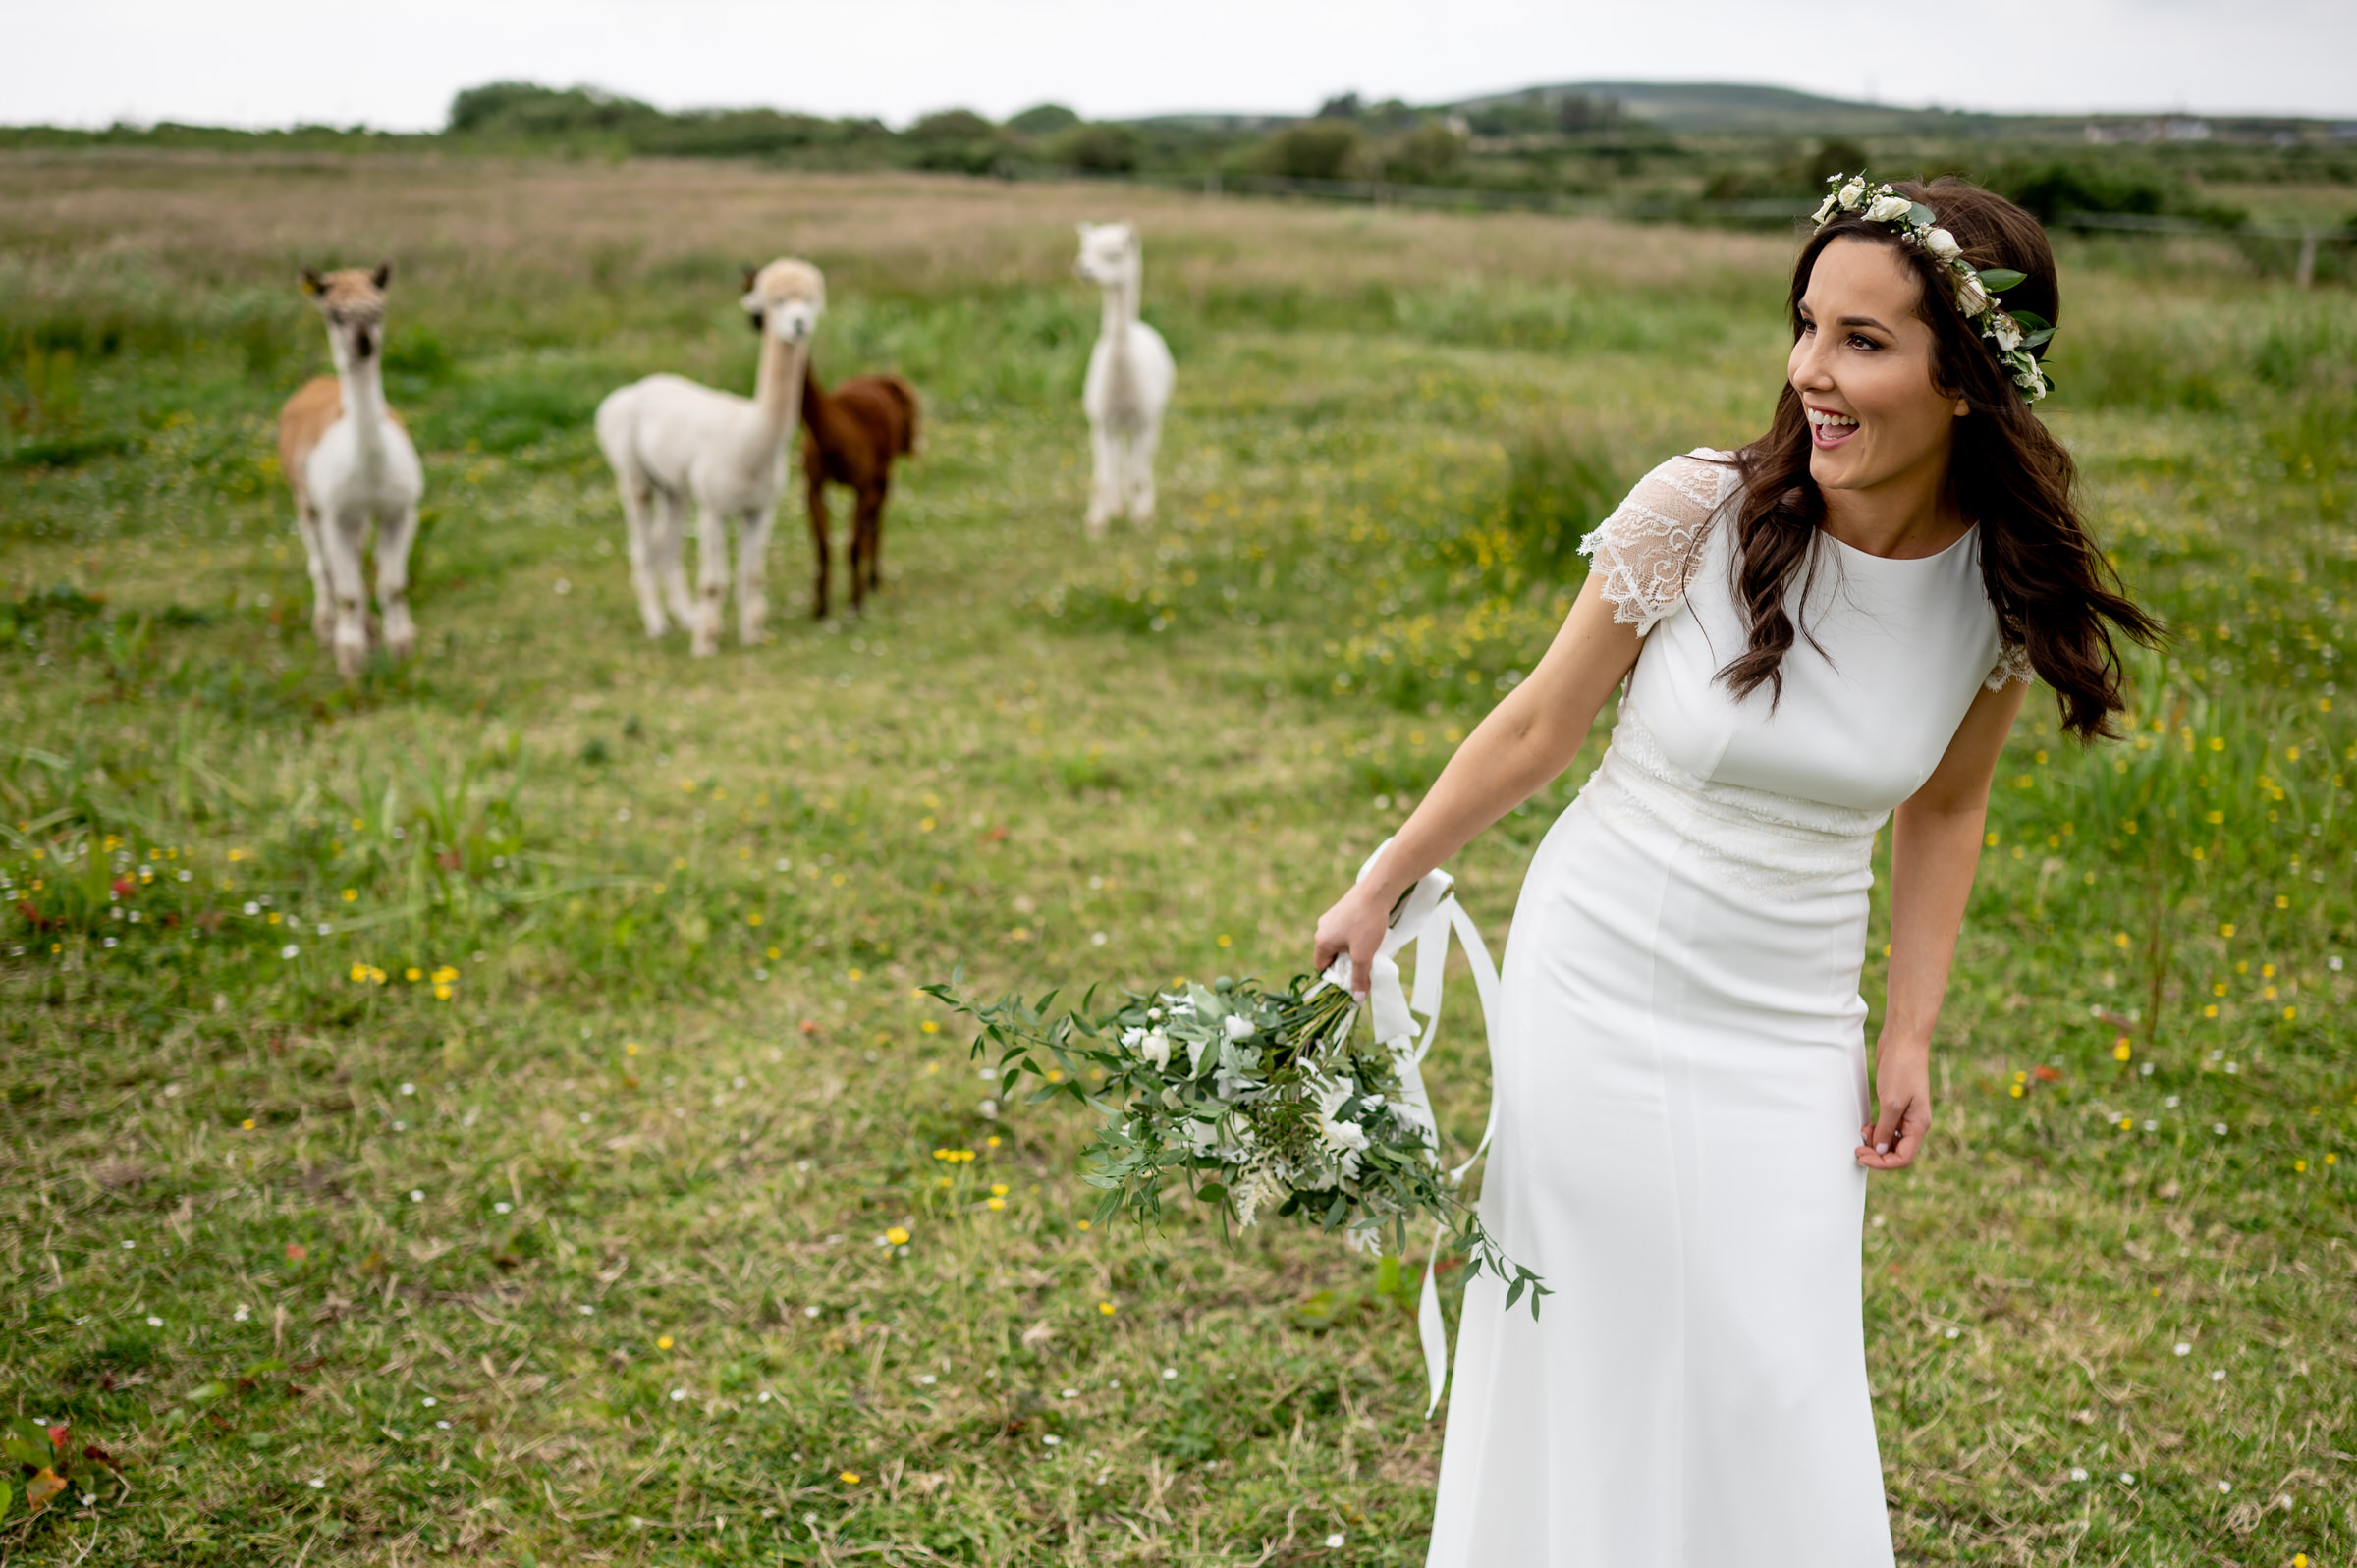 Bride near alpacas - photo by John Gillooley